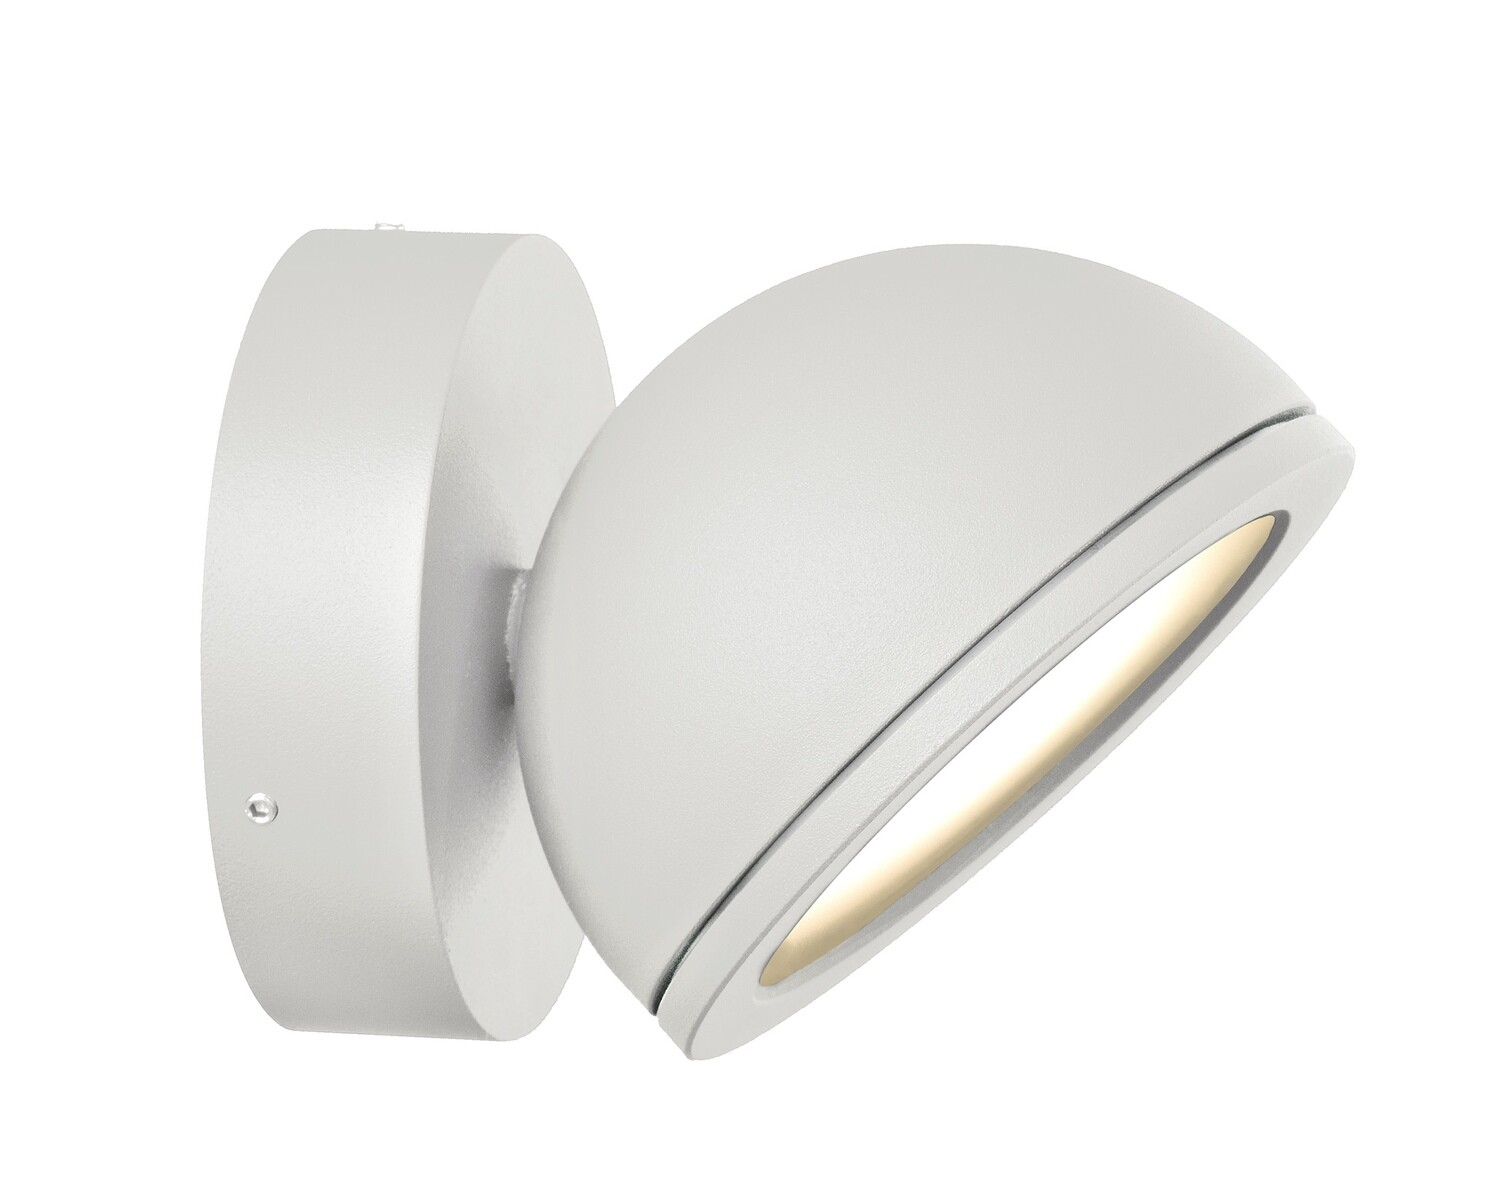 Everest Wall Lamp for GX53 LED lightsource, IP54, White